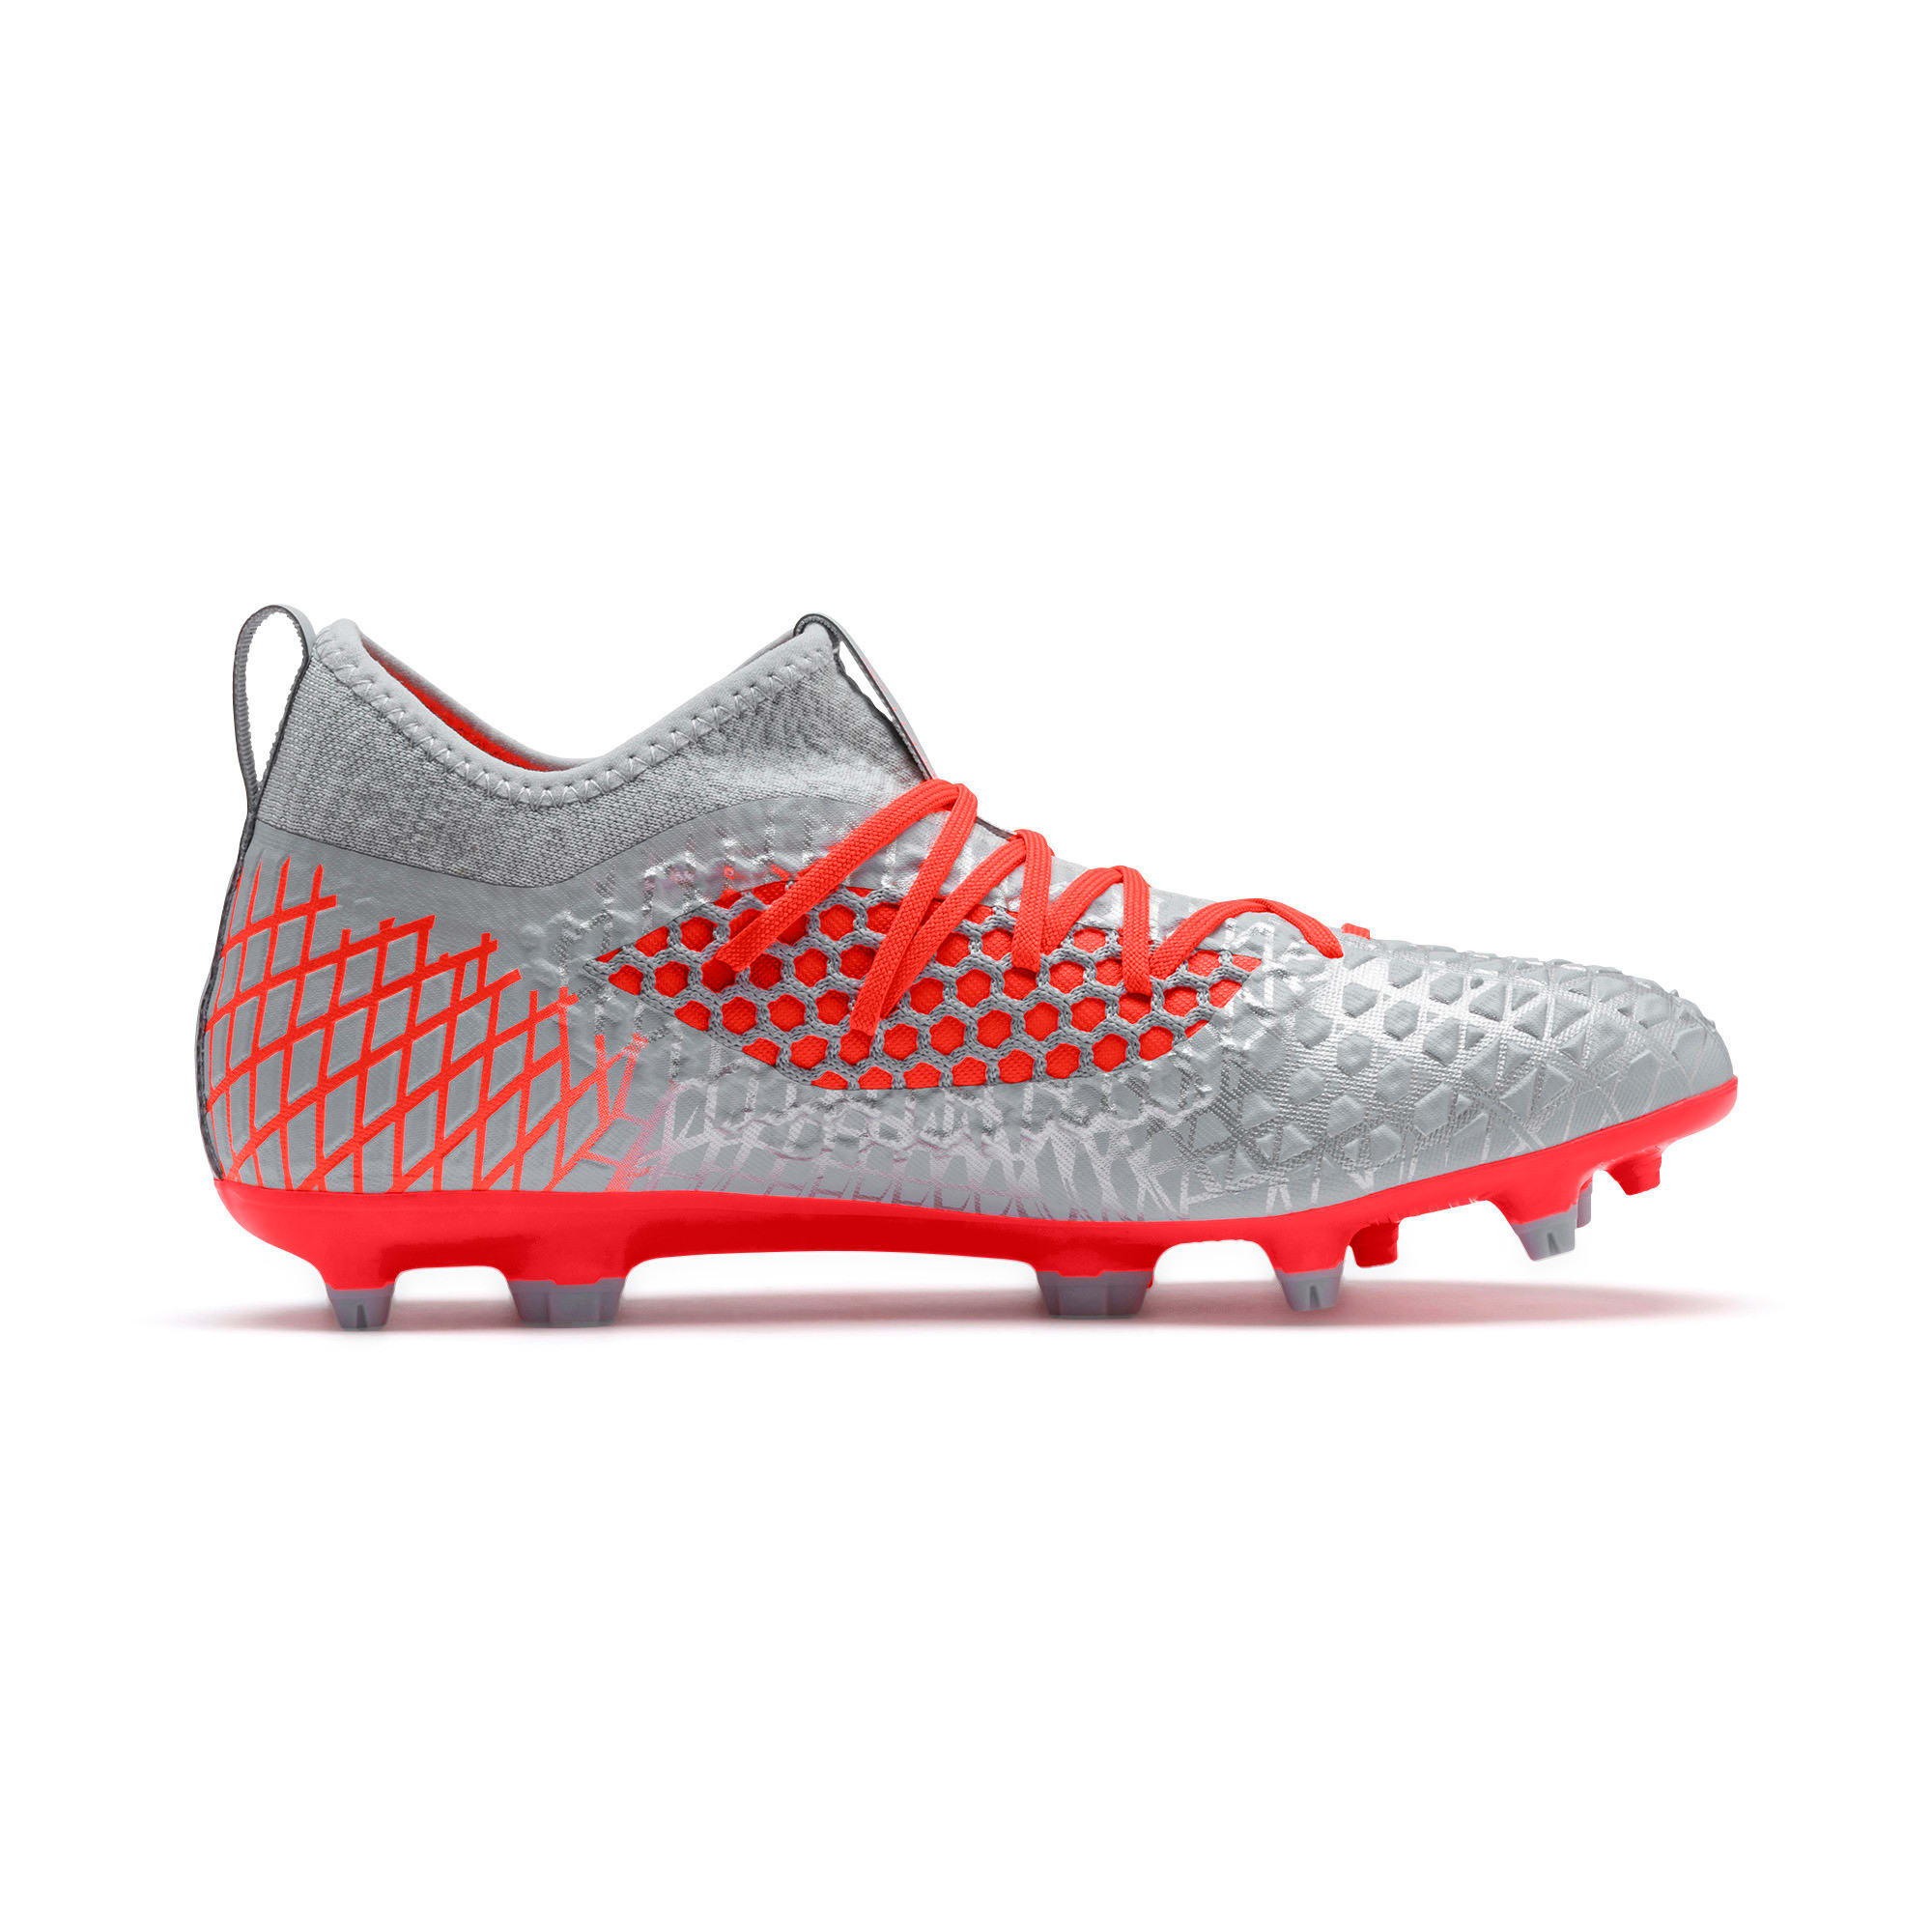 Thumbnail 6 of FUTURE 4.3 NETFIT FG/AG Men's Football Boots, Glacial Blue-Nrgy Red, medium-IND